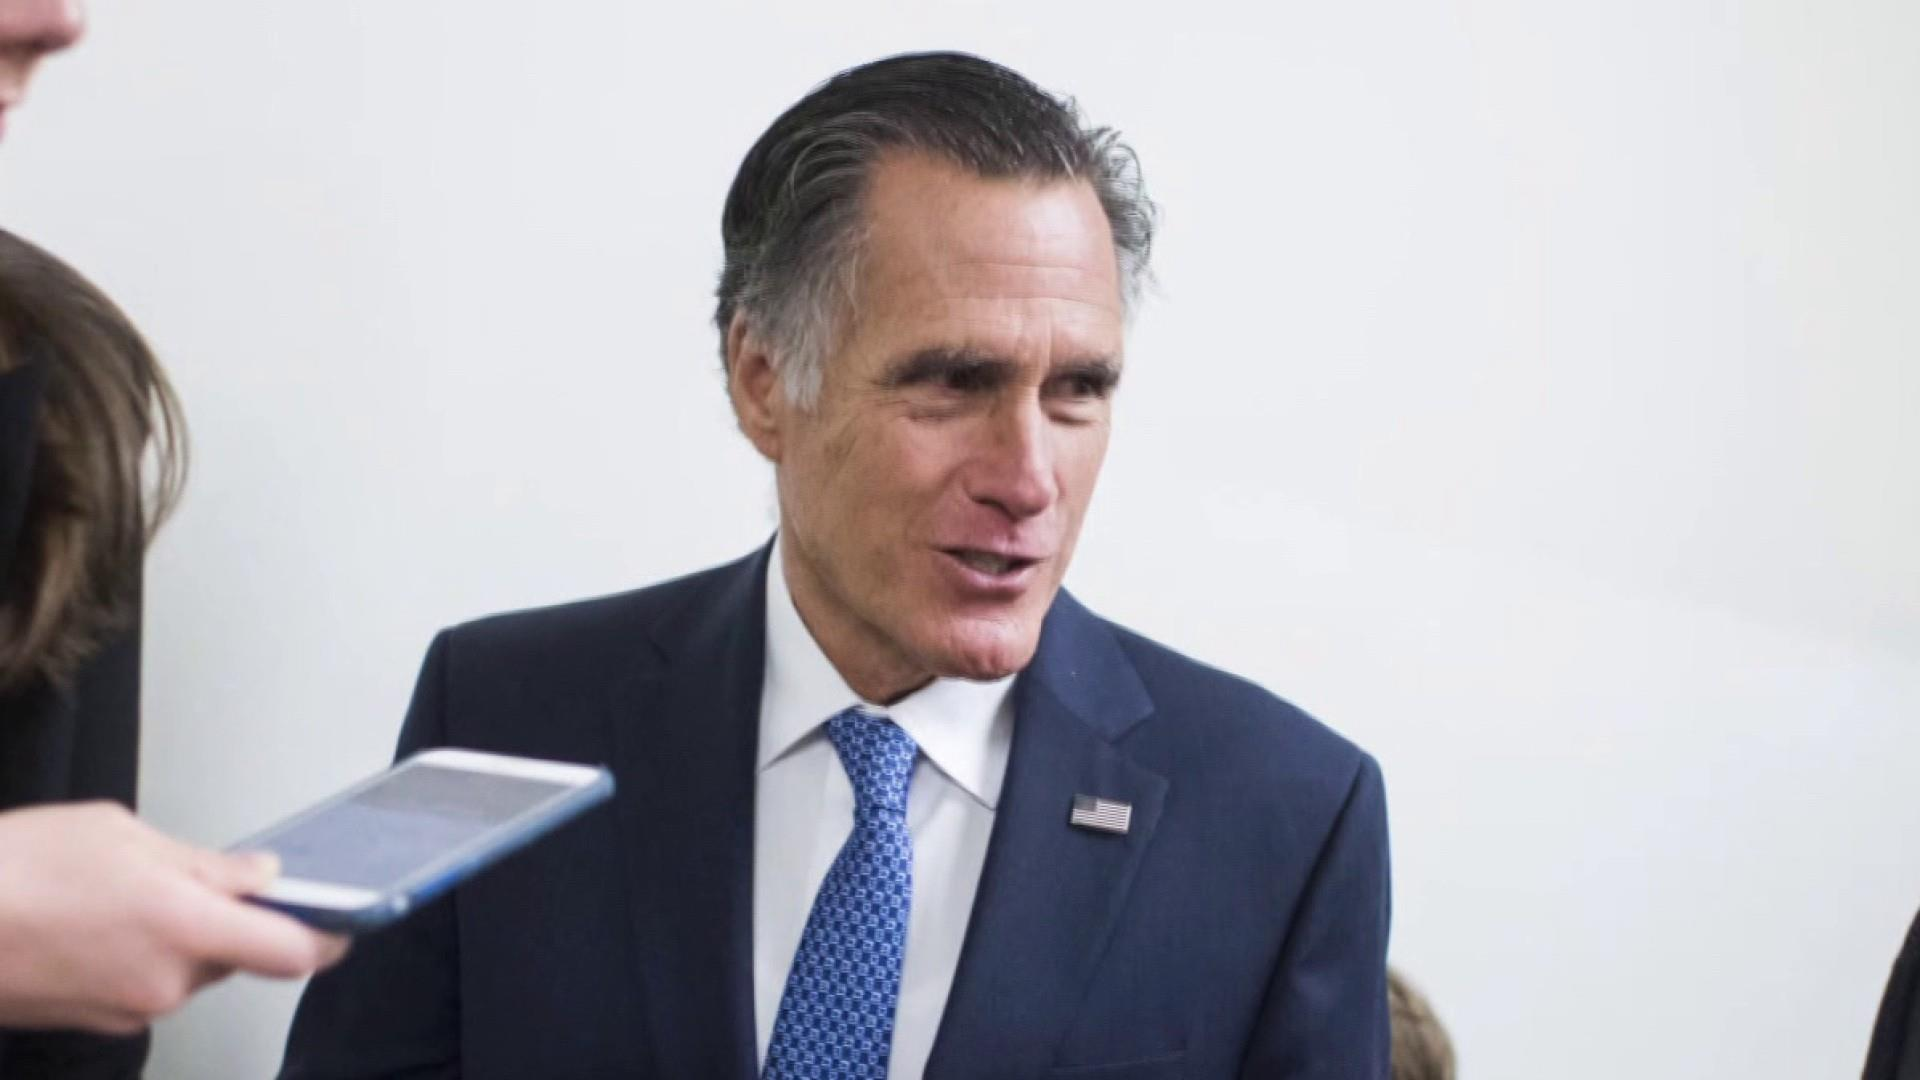 Romney leading the Republican charge against Trump